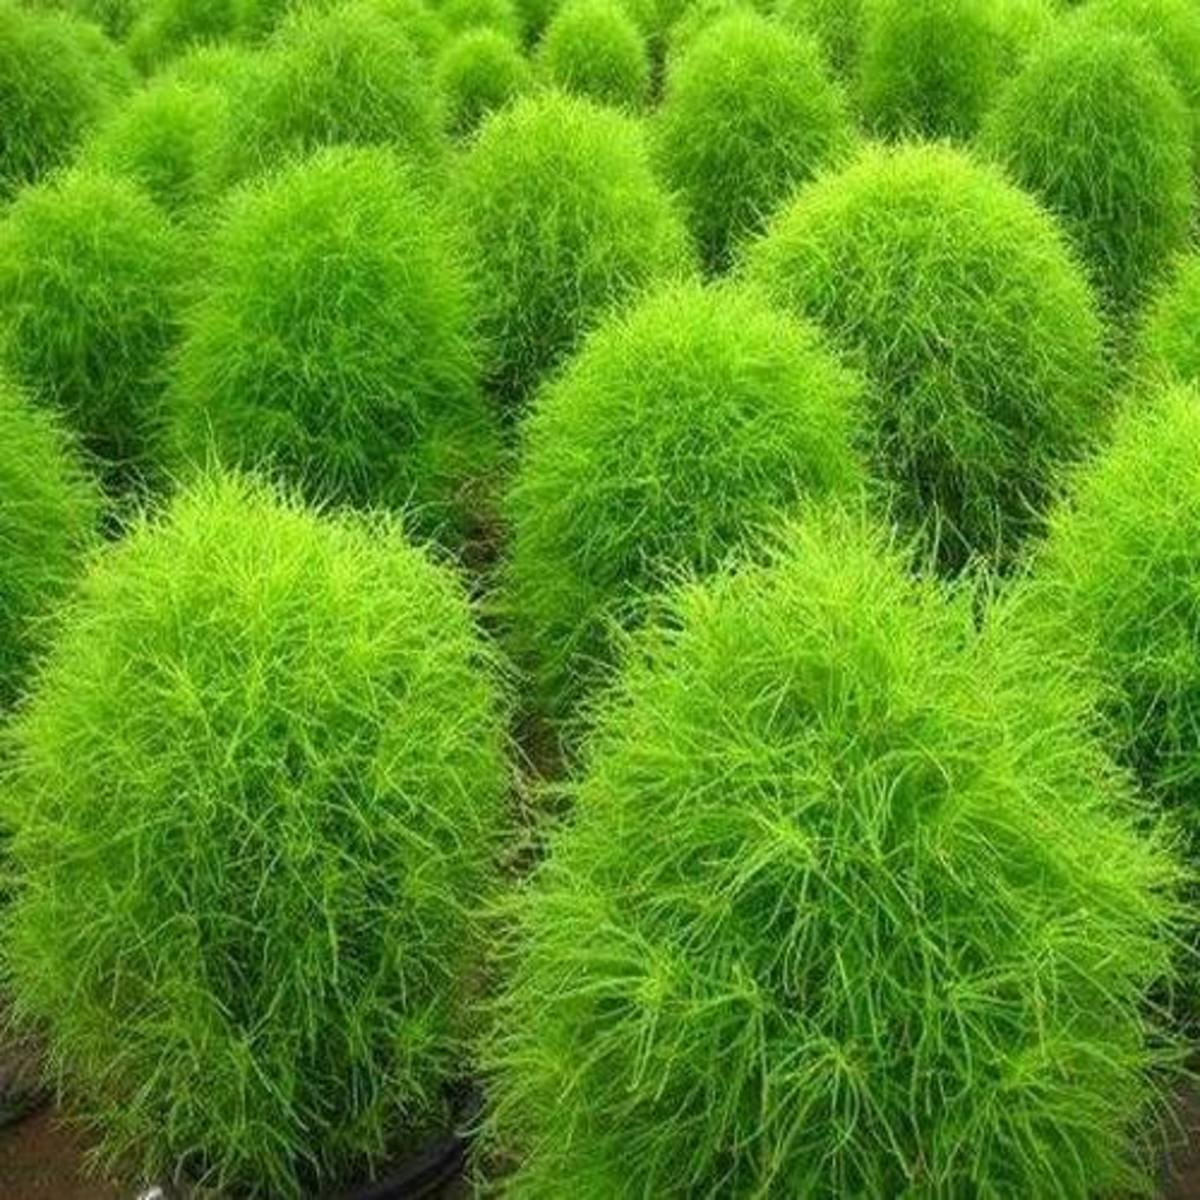 This gives a nice green color to the whole garden.